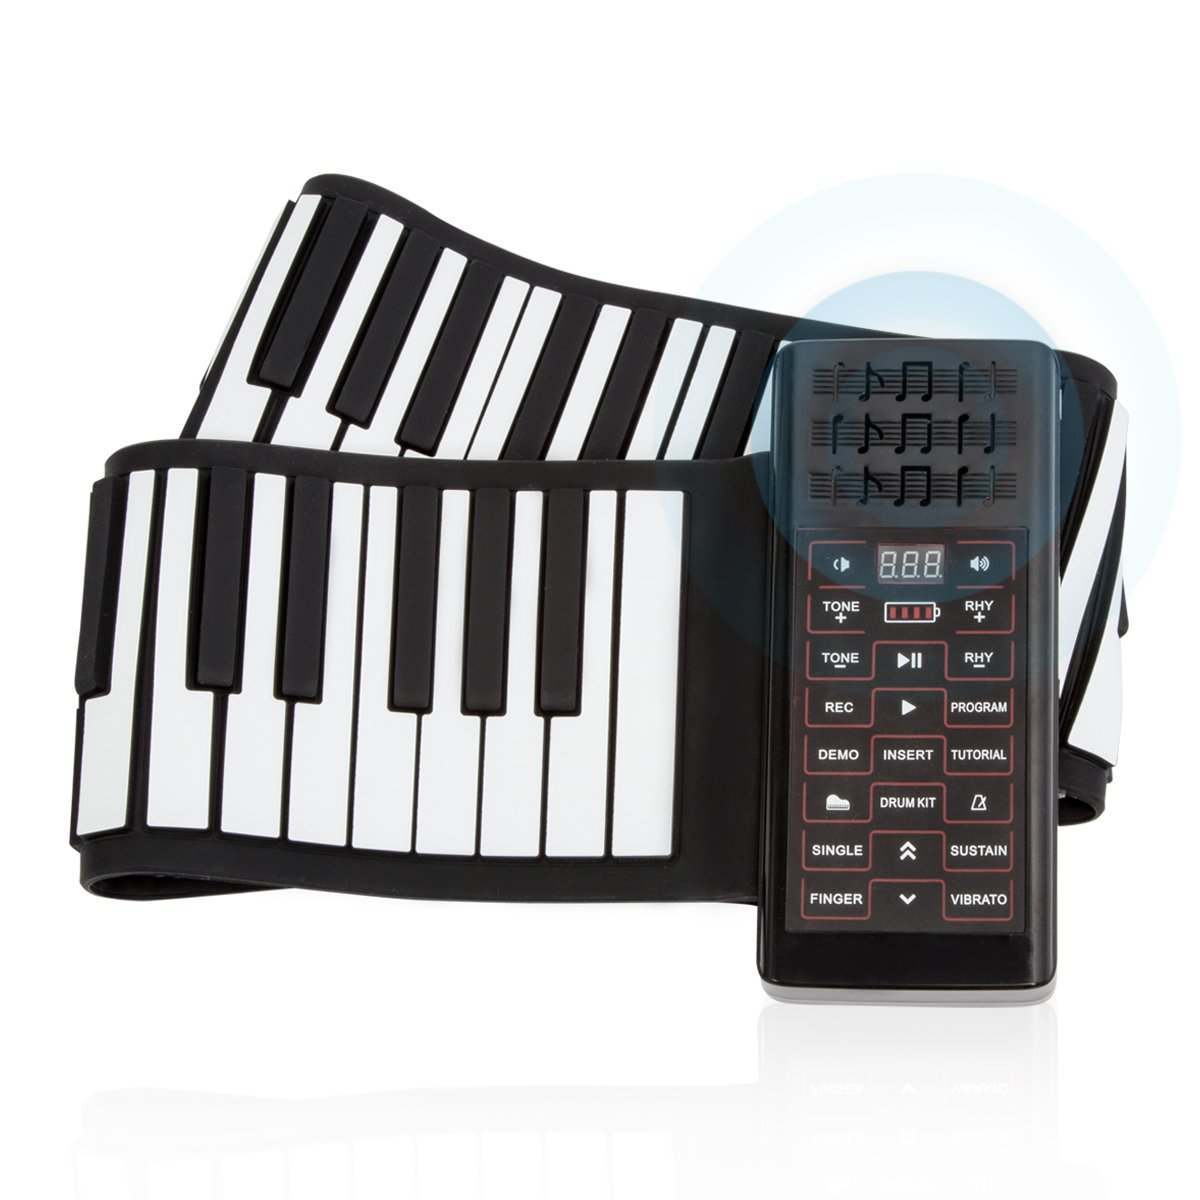 JouerNow RUP002 88 Thickened-Keys Roll Up Piano Synthesizer/ Electronic Flexible Silicone Keyboard Hand-rolling Piano with Battery-sustained Pedal, US plug